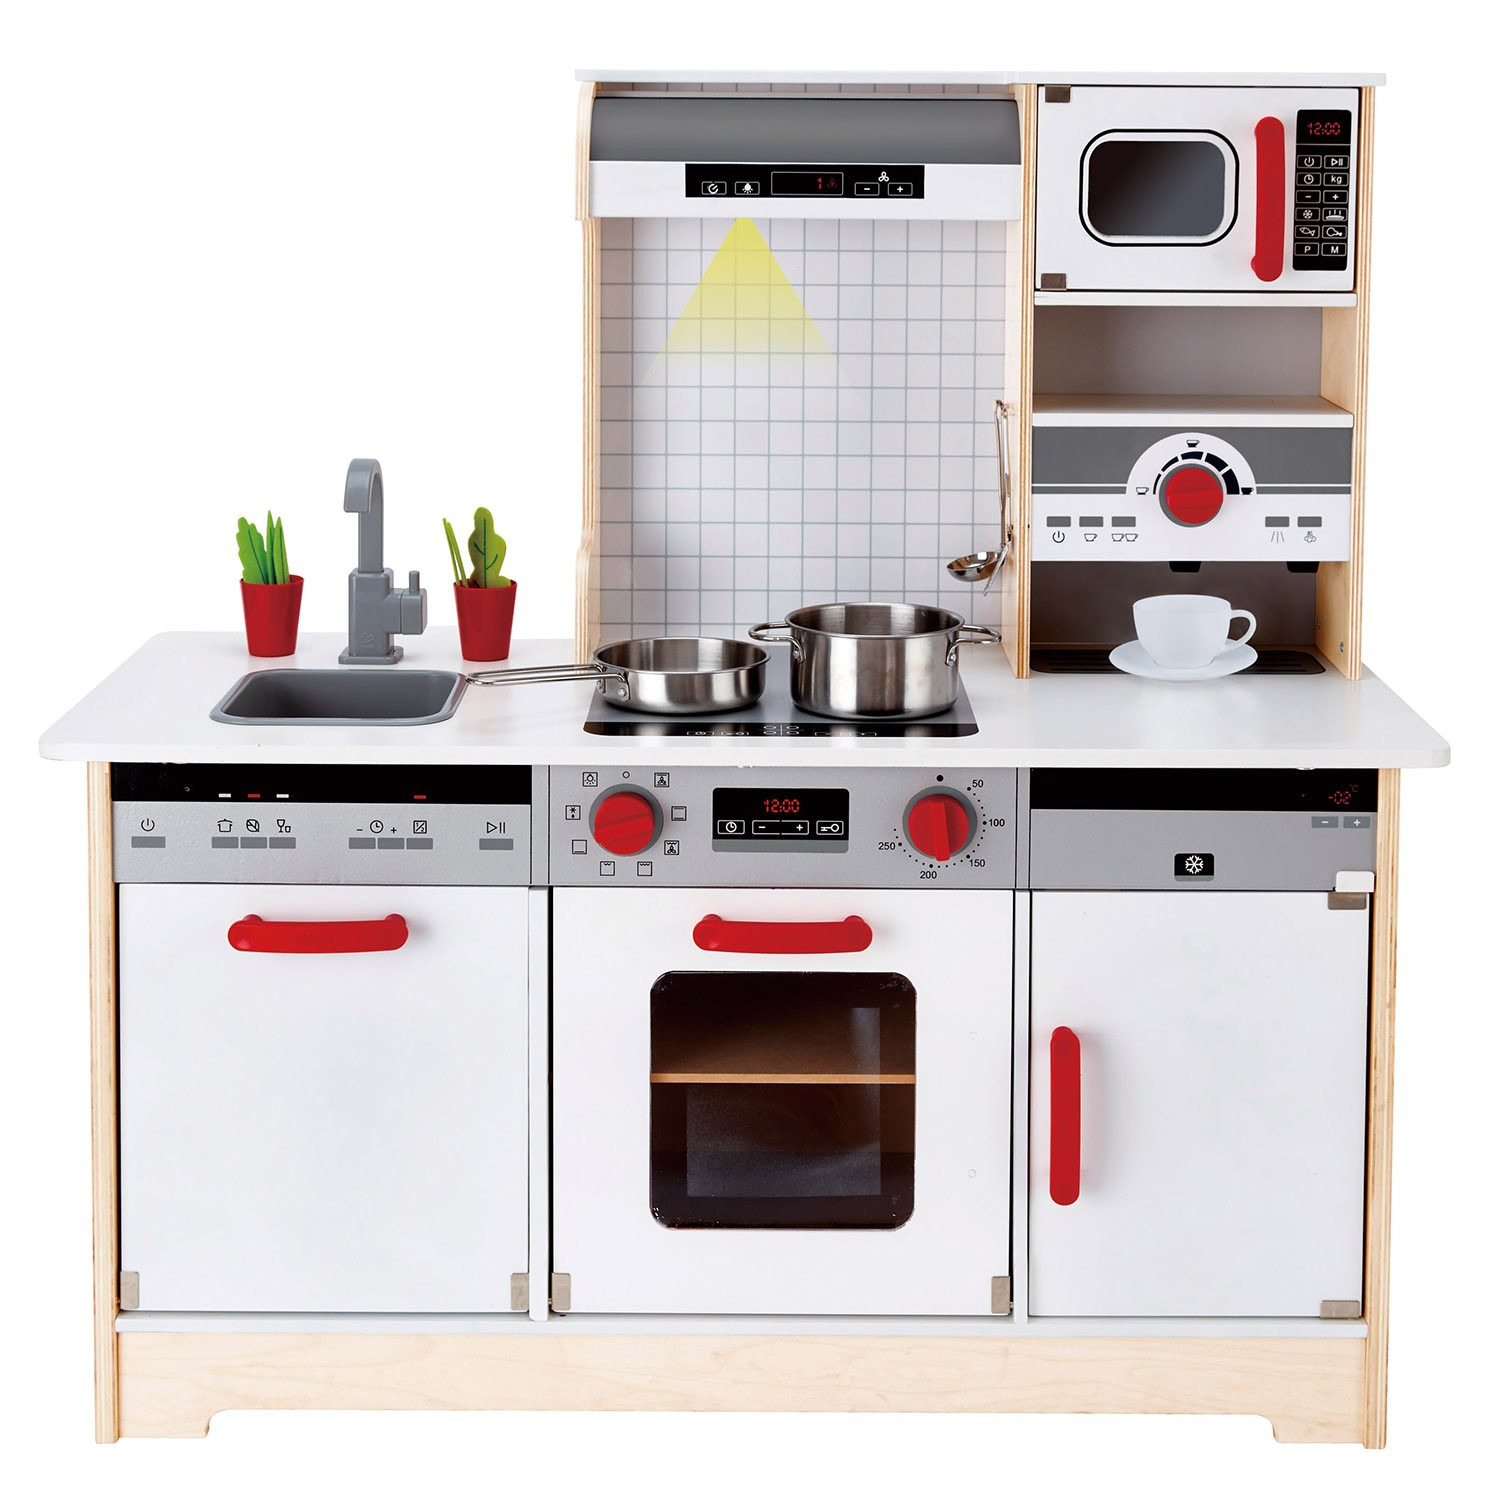 Hape E3145 All In 1 Kitchen Role Play Toy For Kids Age 3